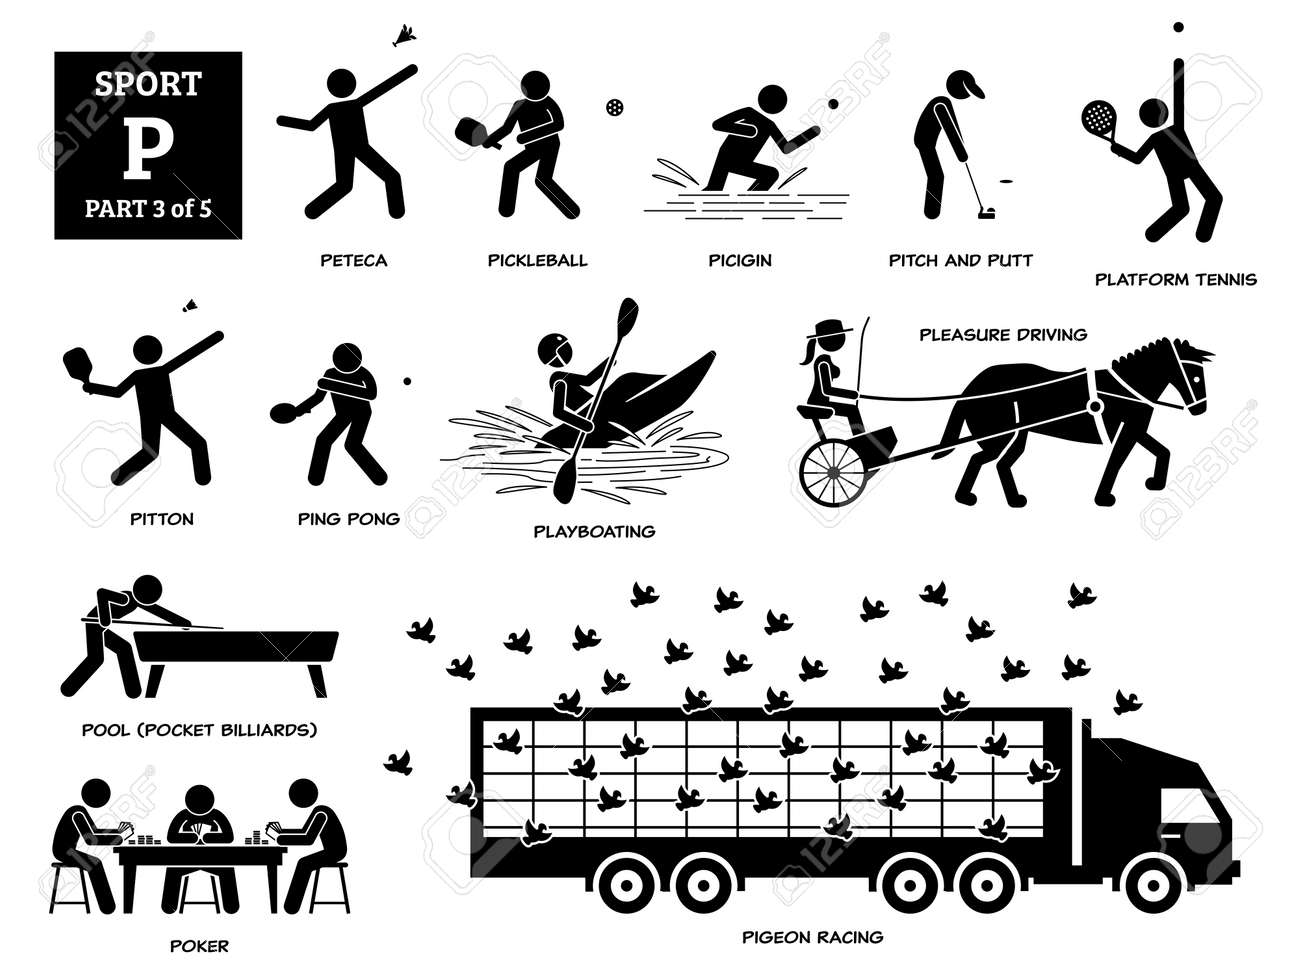 Sport games alphabet P vector icons pictogram. Peteca, pickleball, picigin, pitch and putt, platform tennis, pitton, playboating, pleasure driving, pool, poker, and pigeon racing. - 172078014